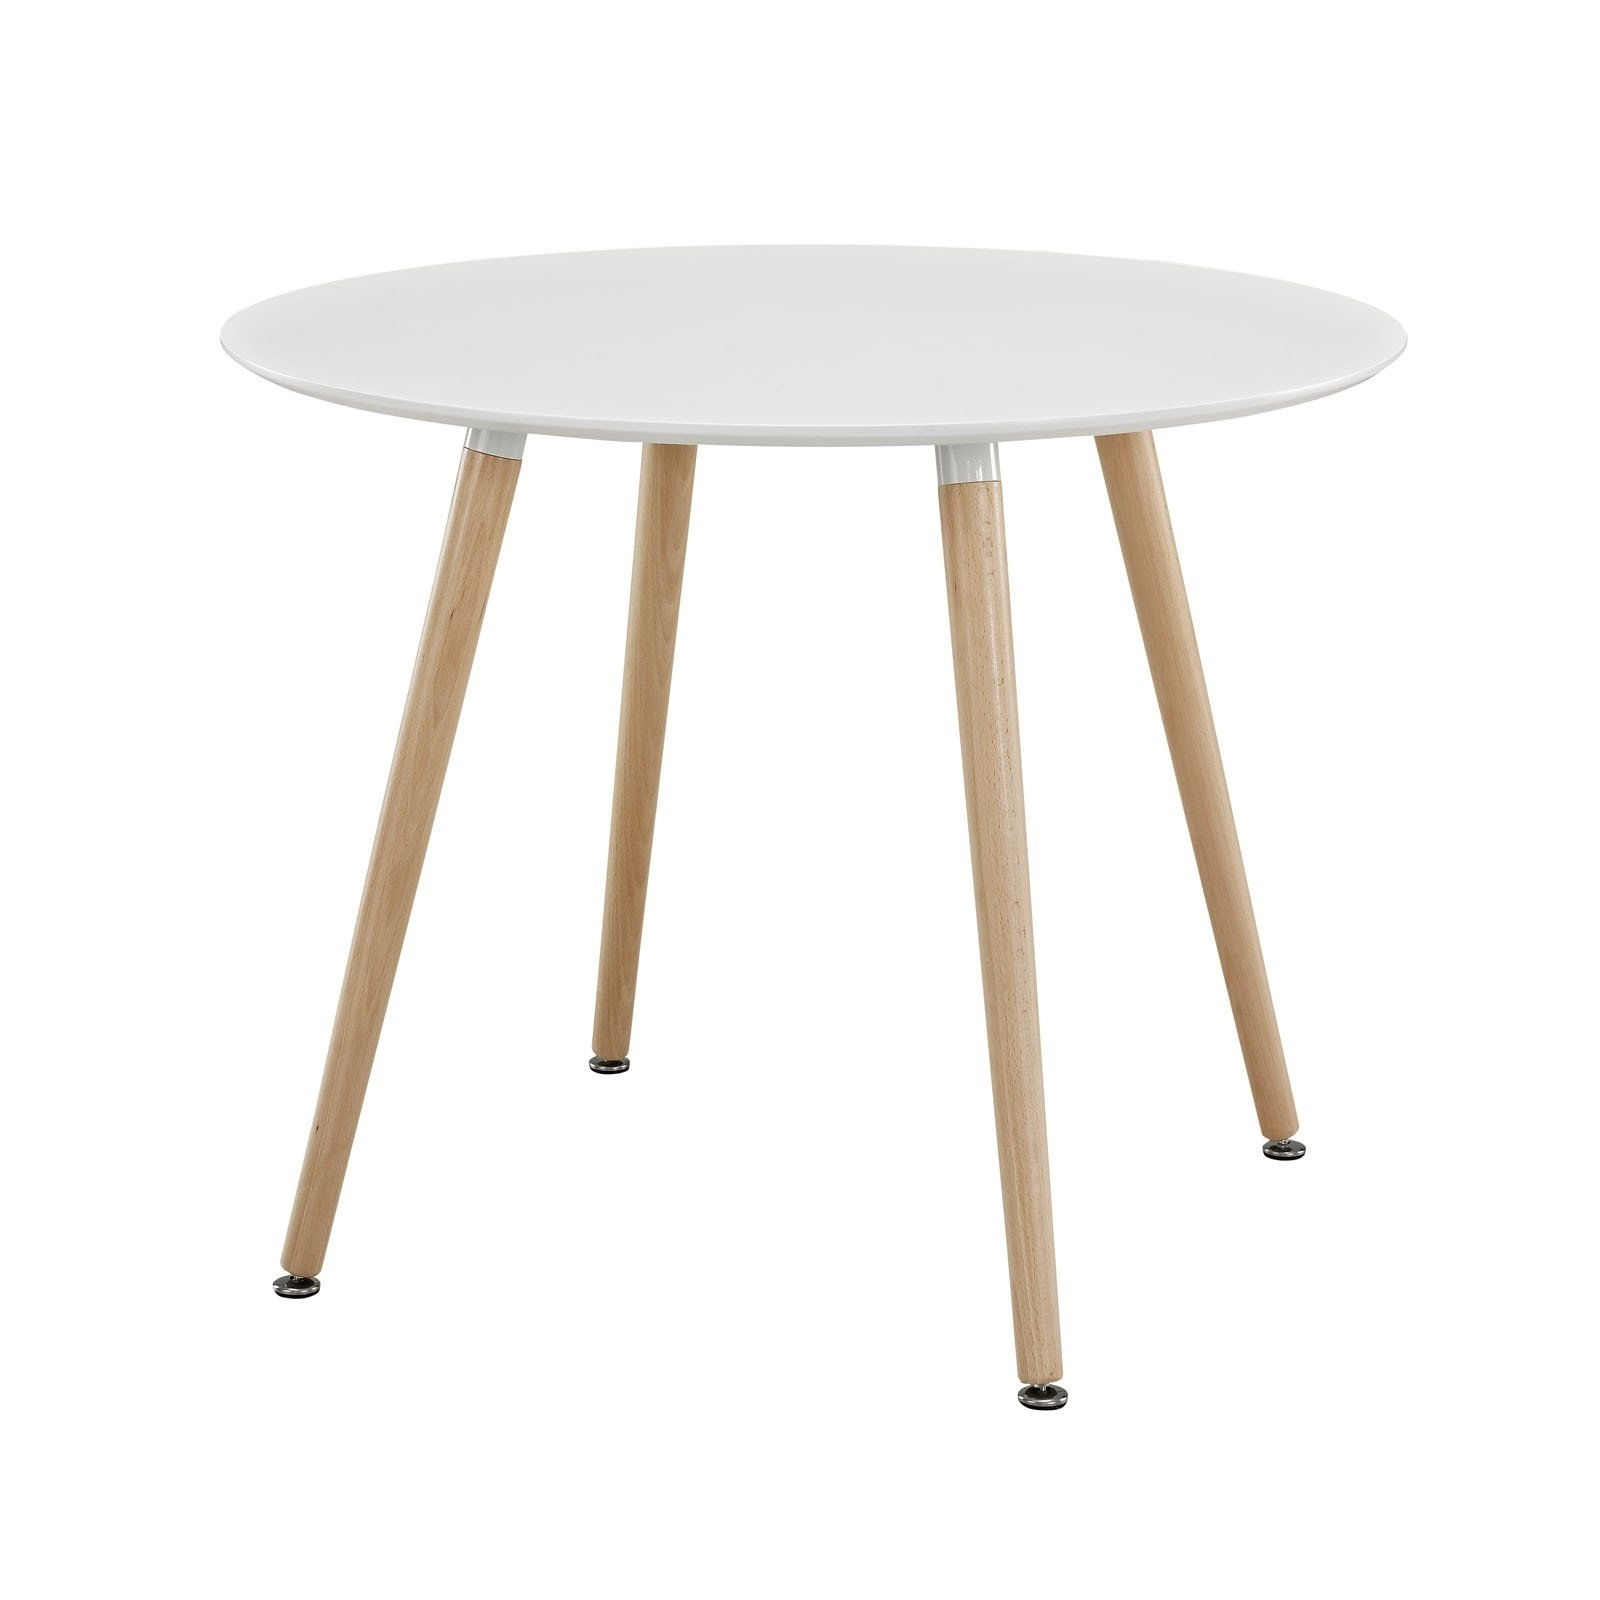 Round Dining Table, Circuits And Products Regarding Newest White Circular Dining Tables (View 13 of 25)